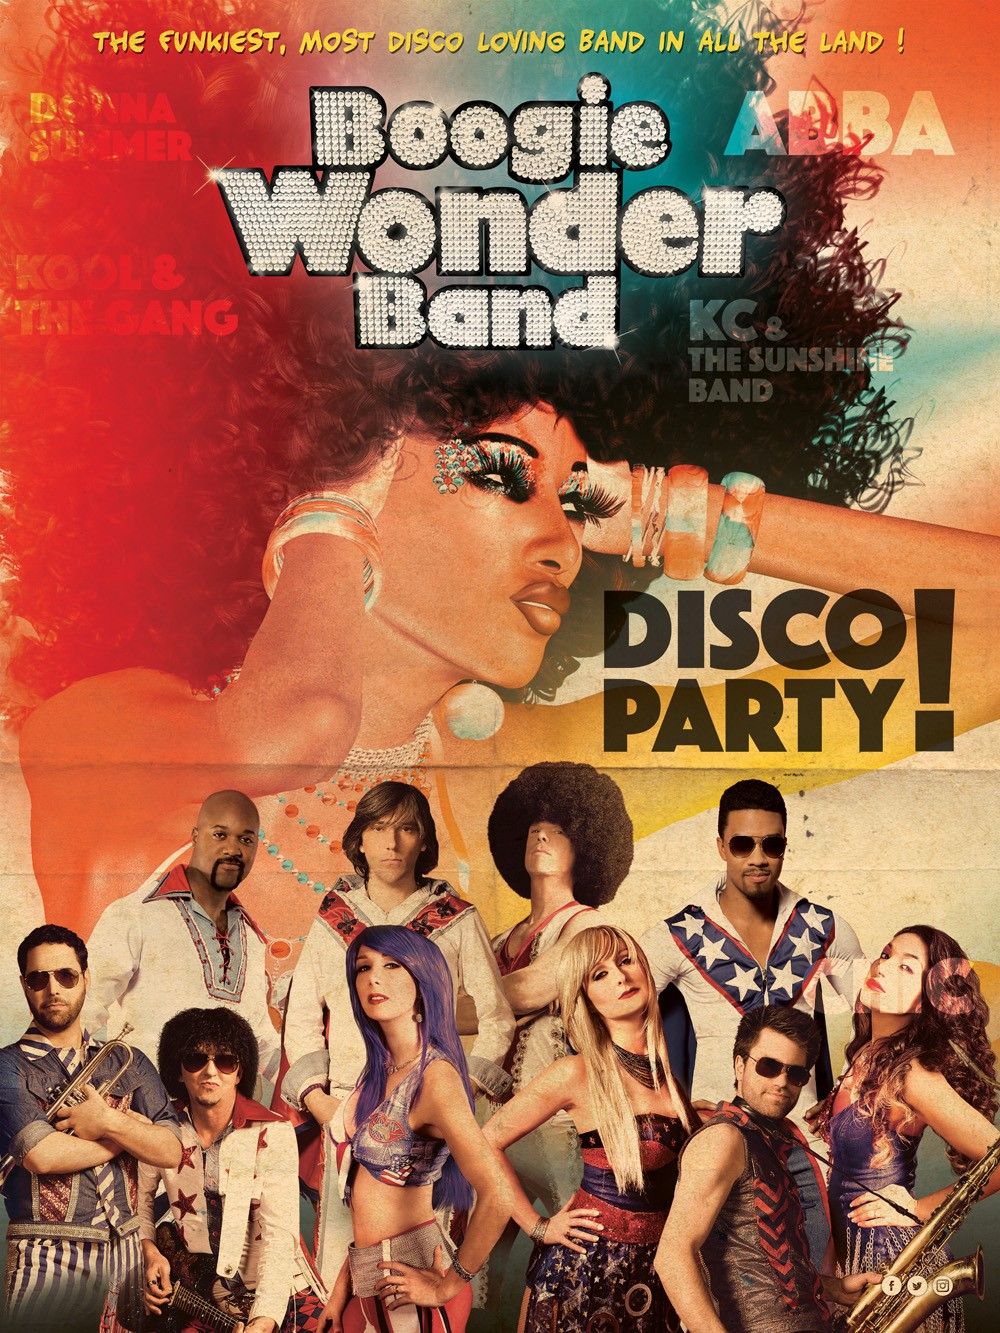 Boogie Wonder Band- Souper spectacle